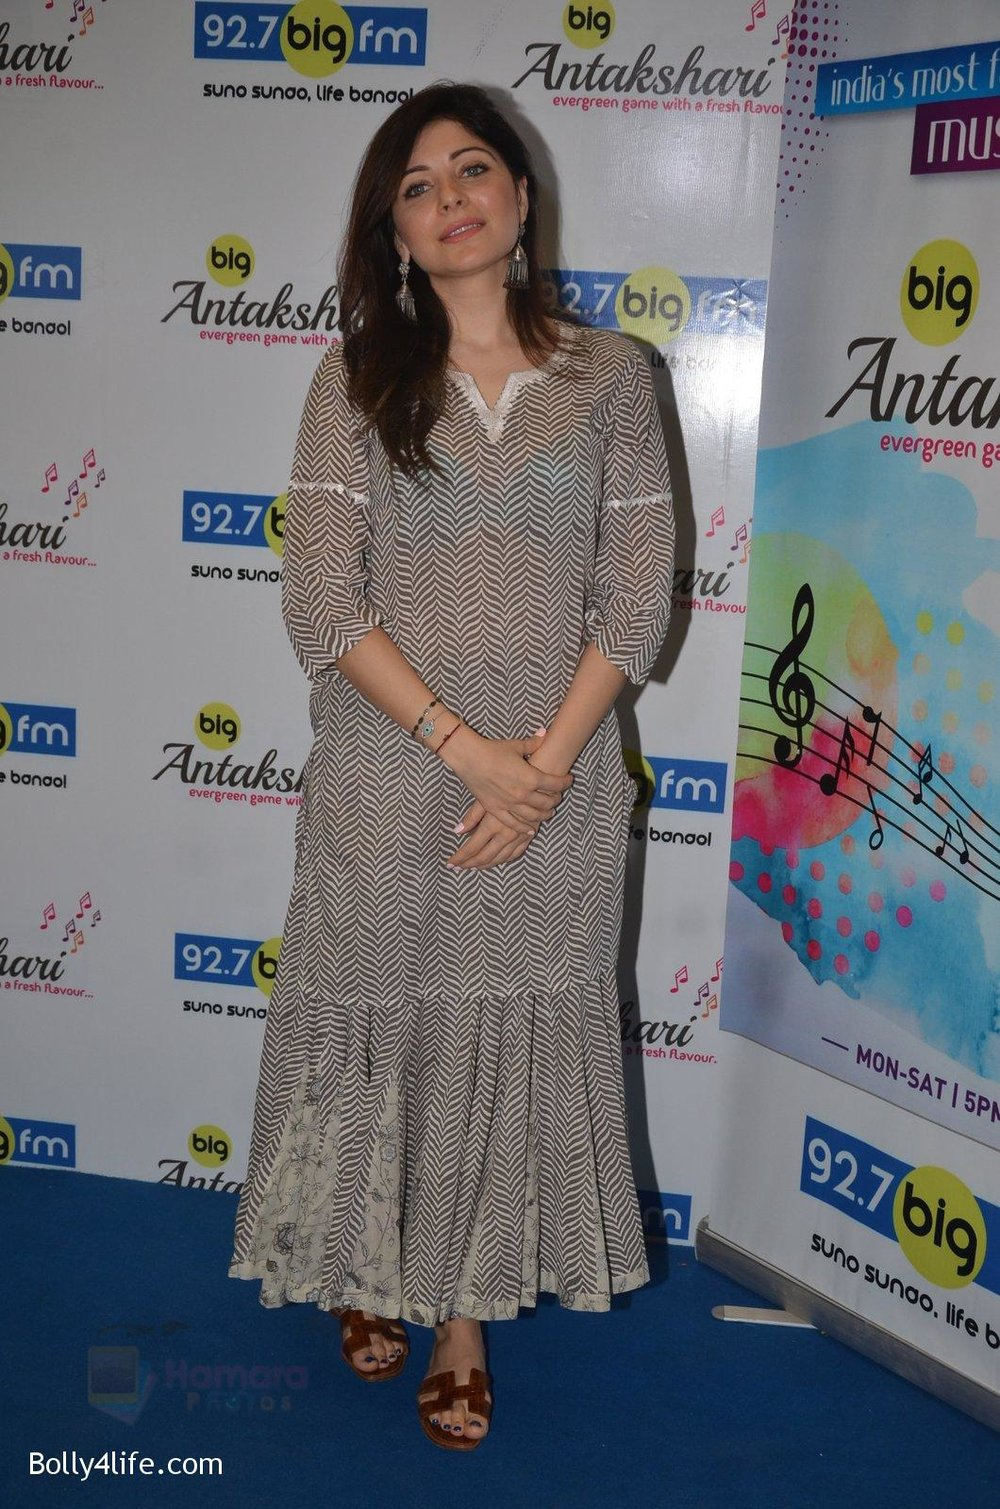 Kanika-Kapoor-at-Big-FM-on-14th-Sept-2016-10.jpg